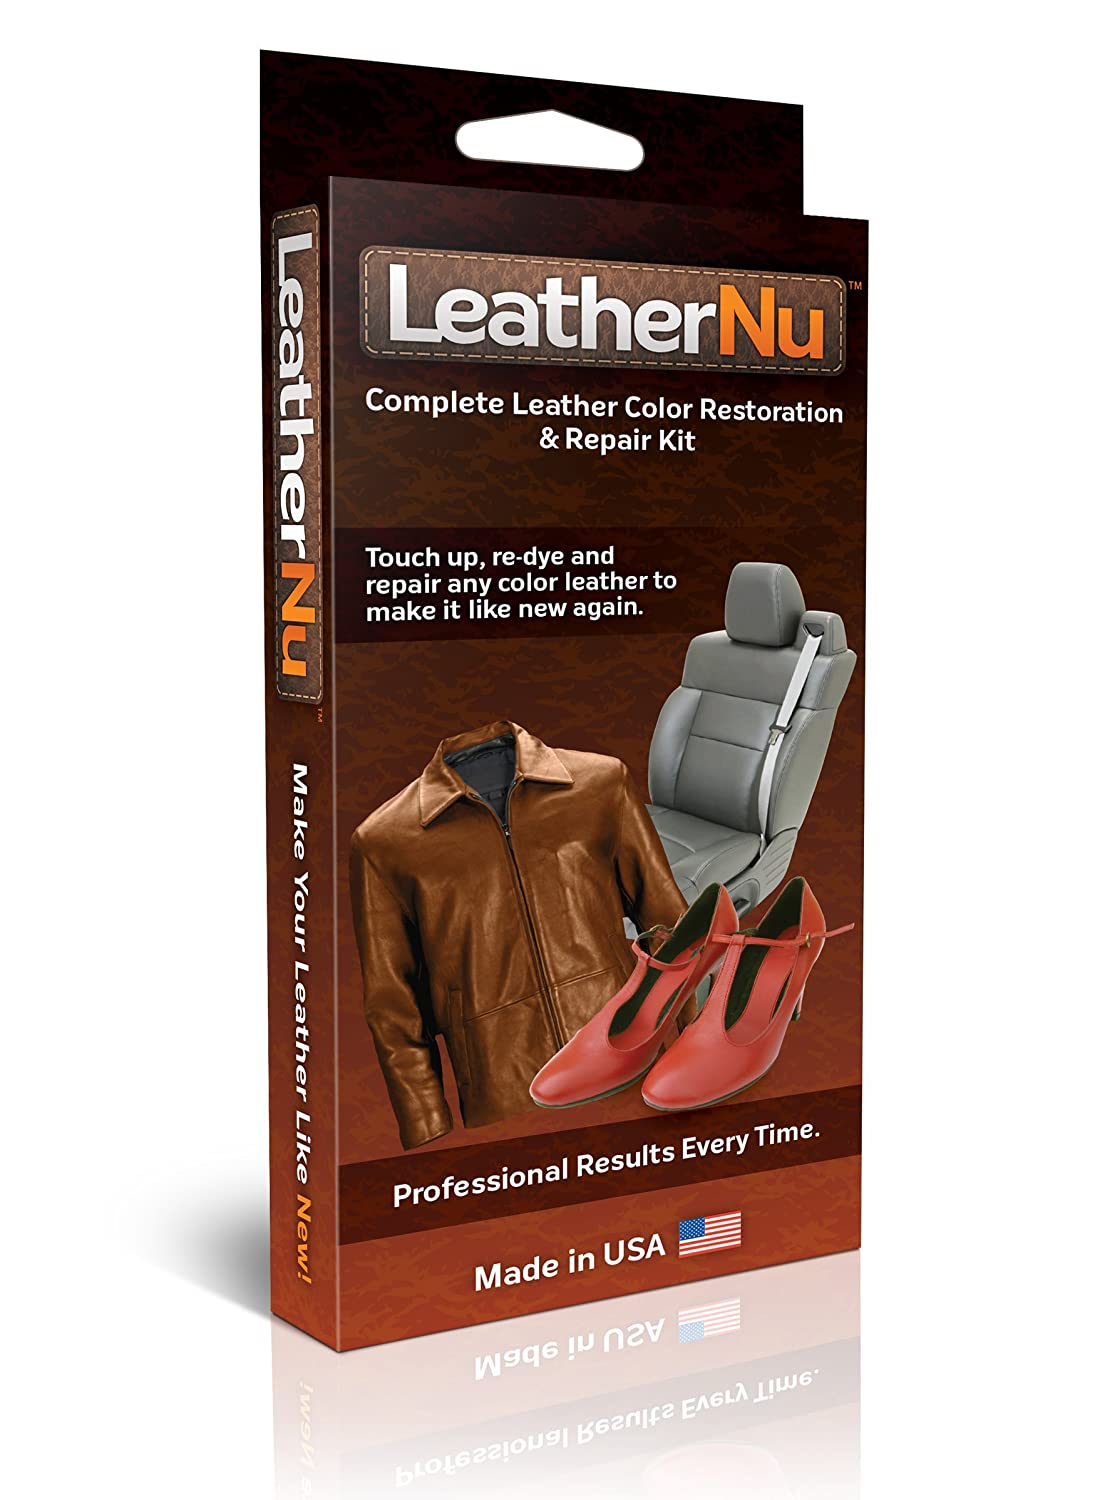 Leathernu Leather Nu Repair Kit For Damaged Or Stained